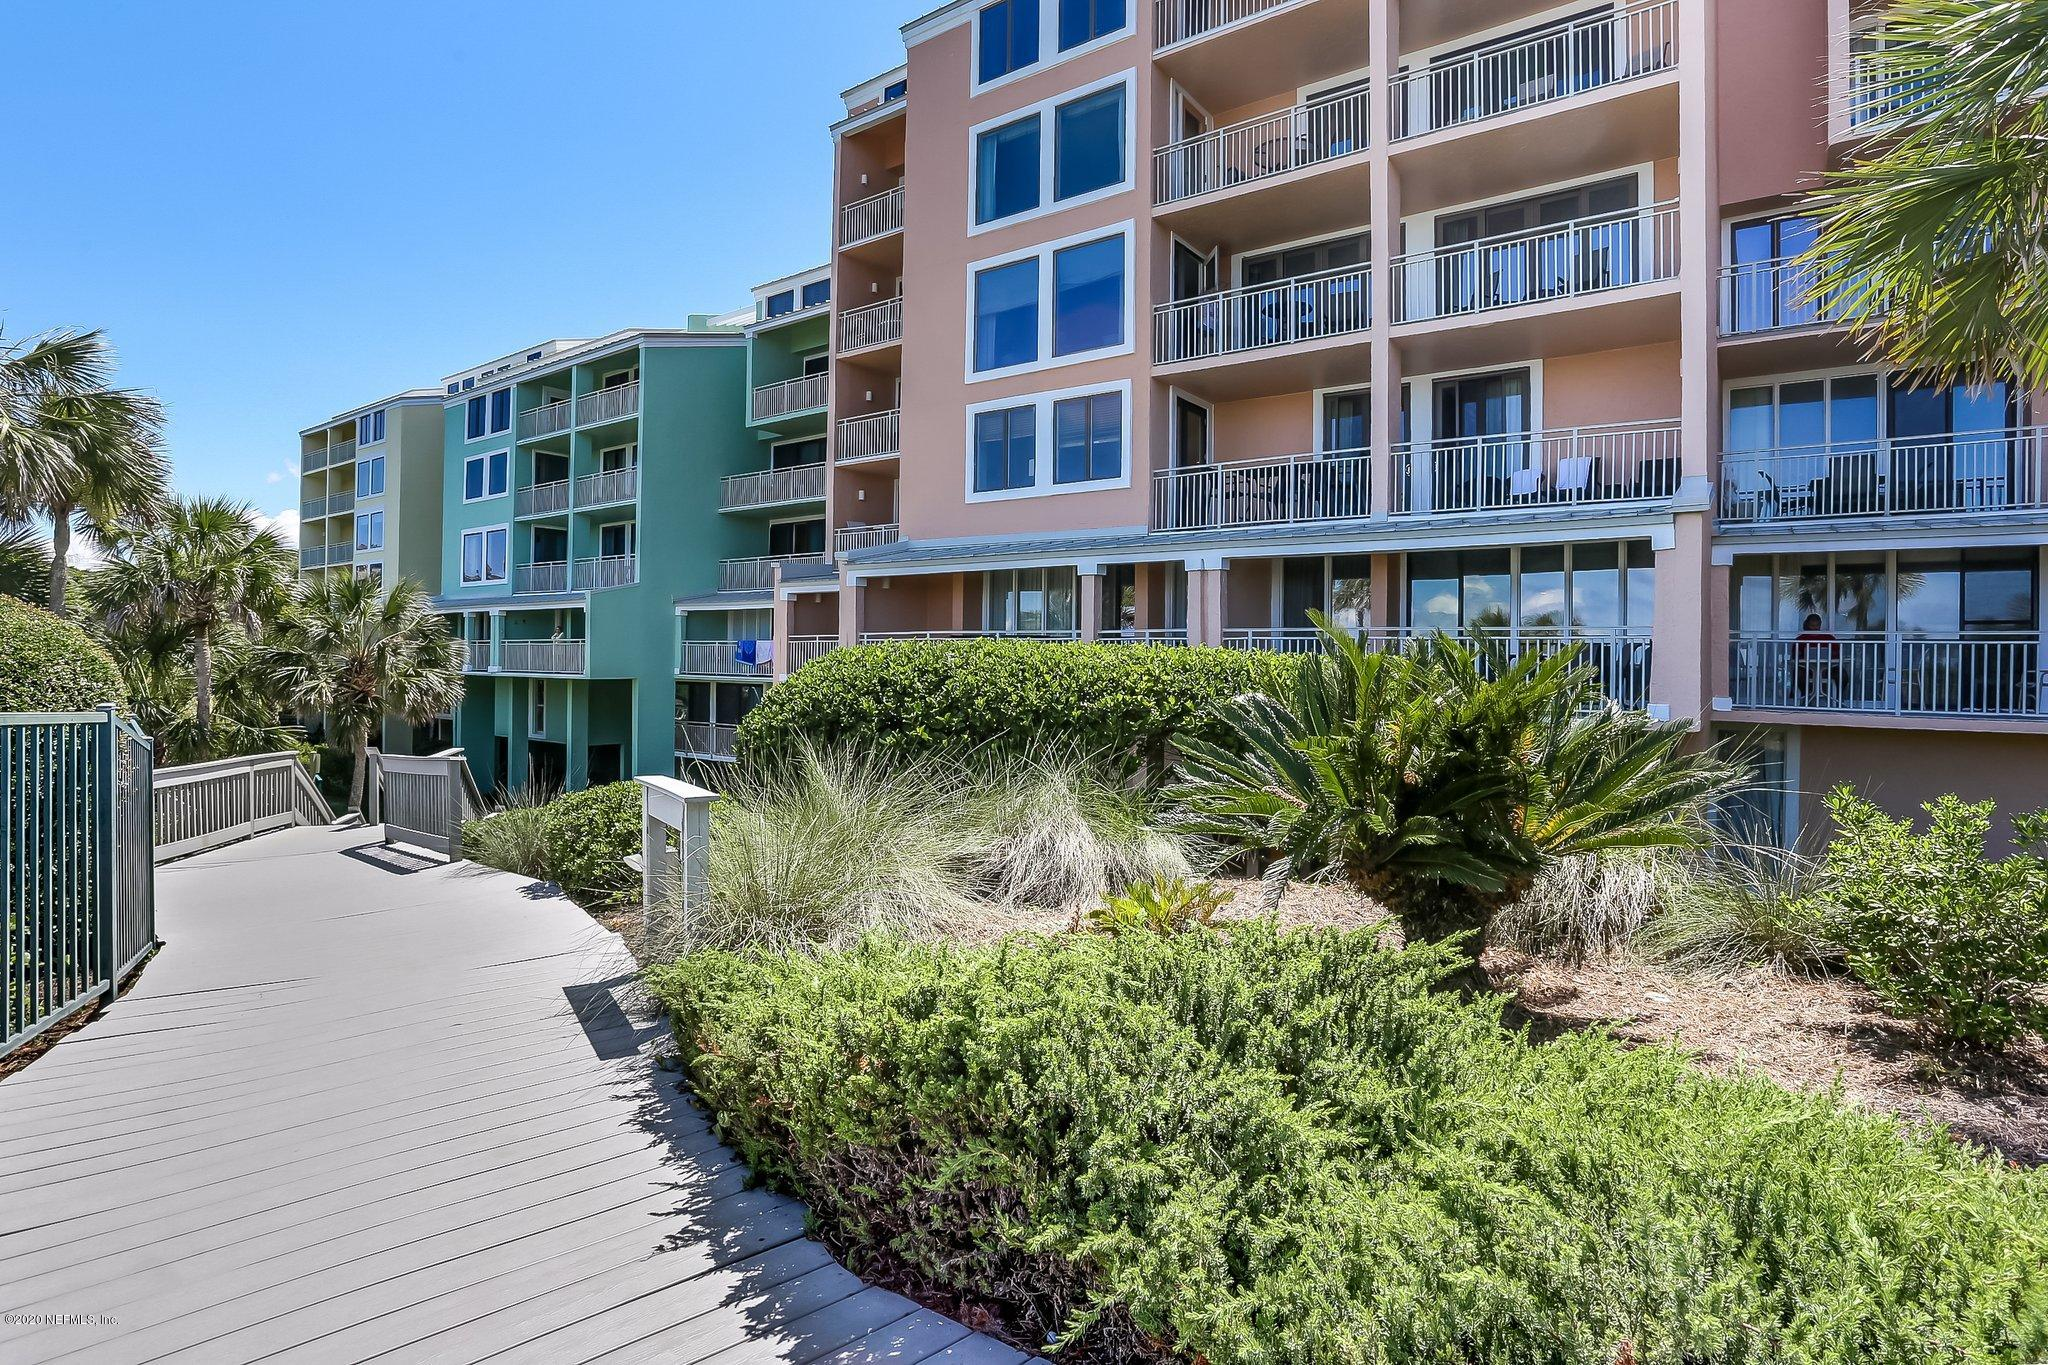 1345 SHIPWATCH, FERNANDINA BEACH, FLORIDA 32034, 2 Bedrooms Bedrooms, ,2 BathroomsBathrooms,Residential,For sale,SHIPWATCH,1082290